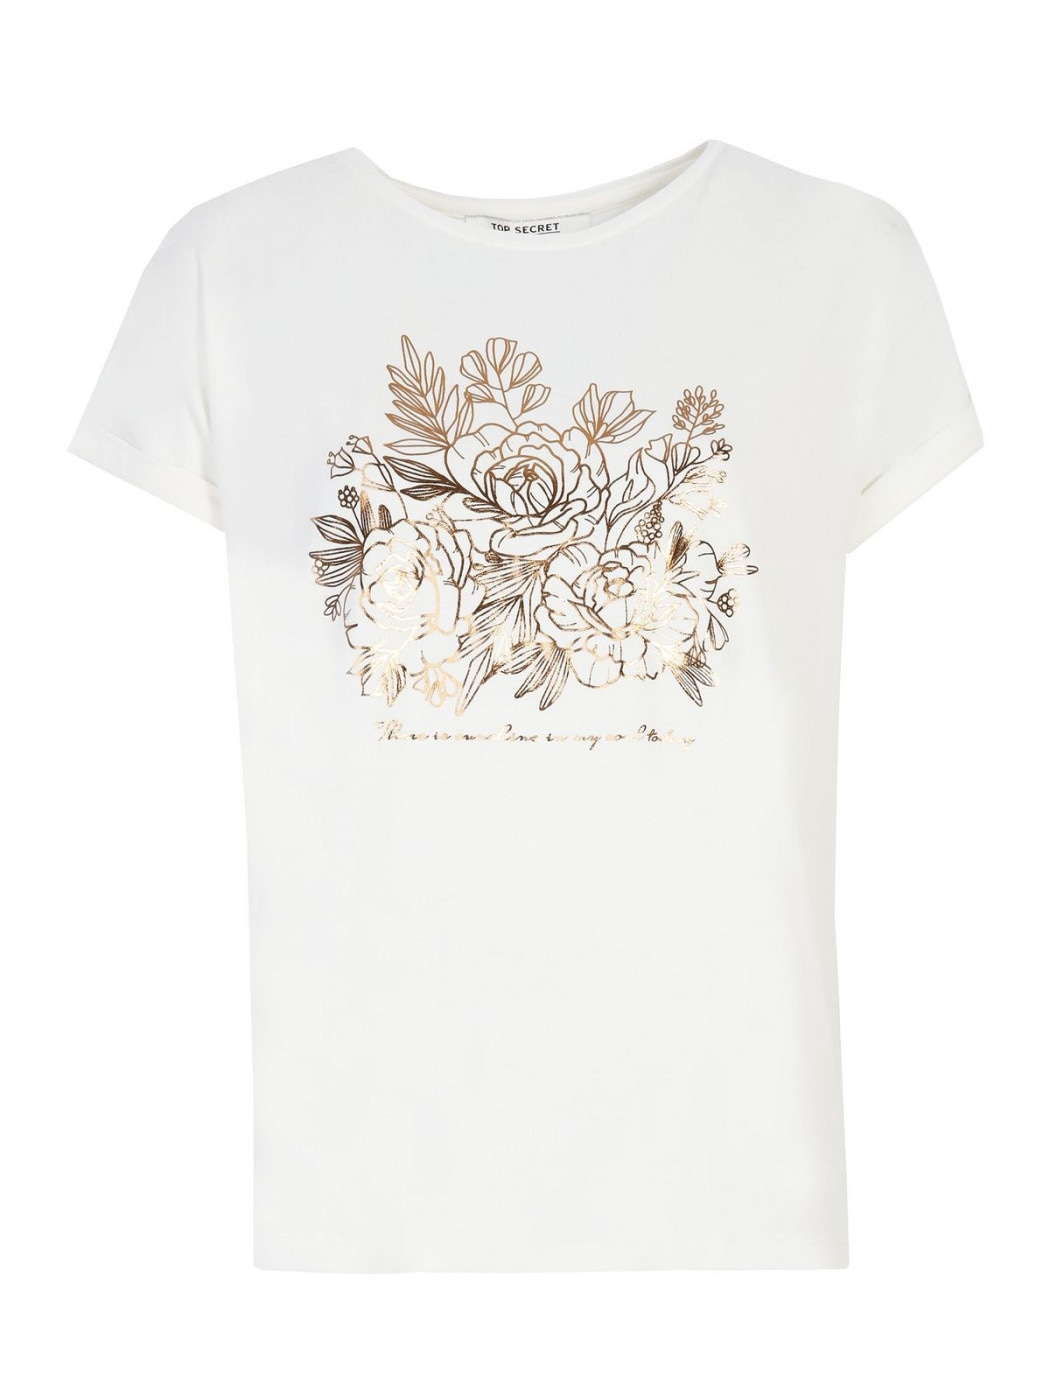 Women's T-shirt Top Secret Graphic printed